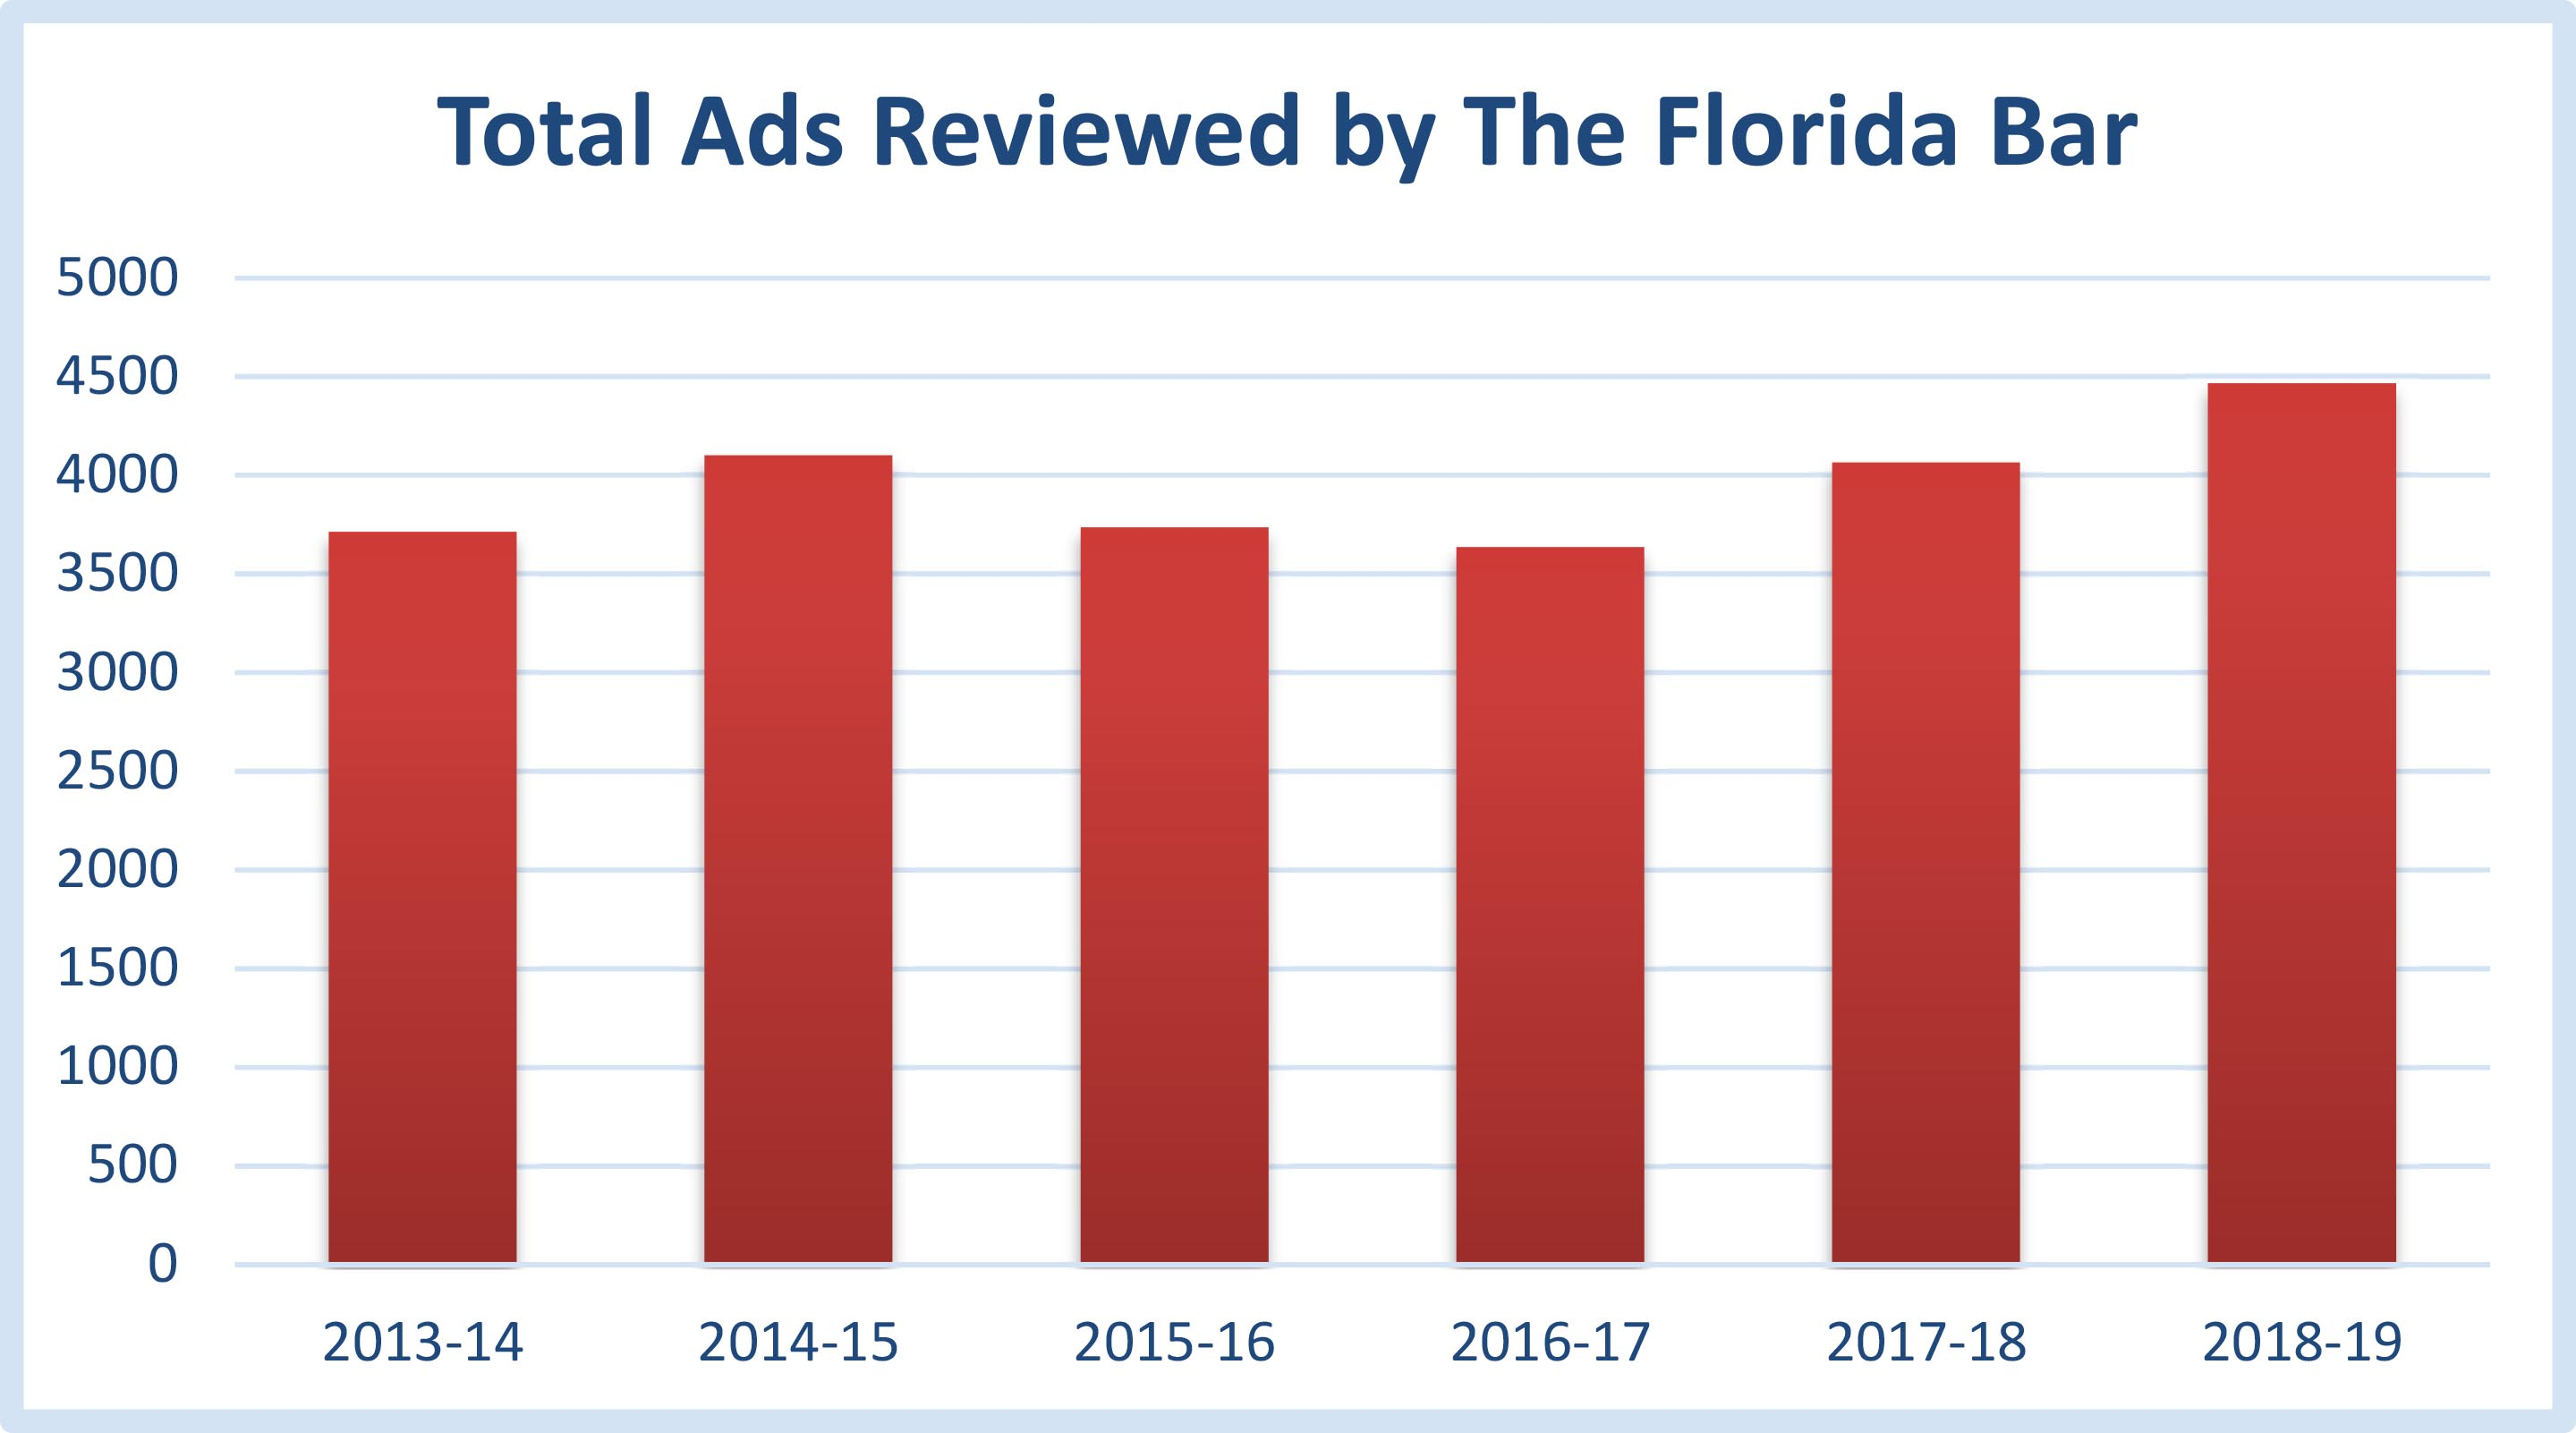 Total ads reviewed by The Florida Bar